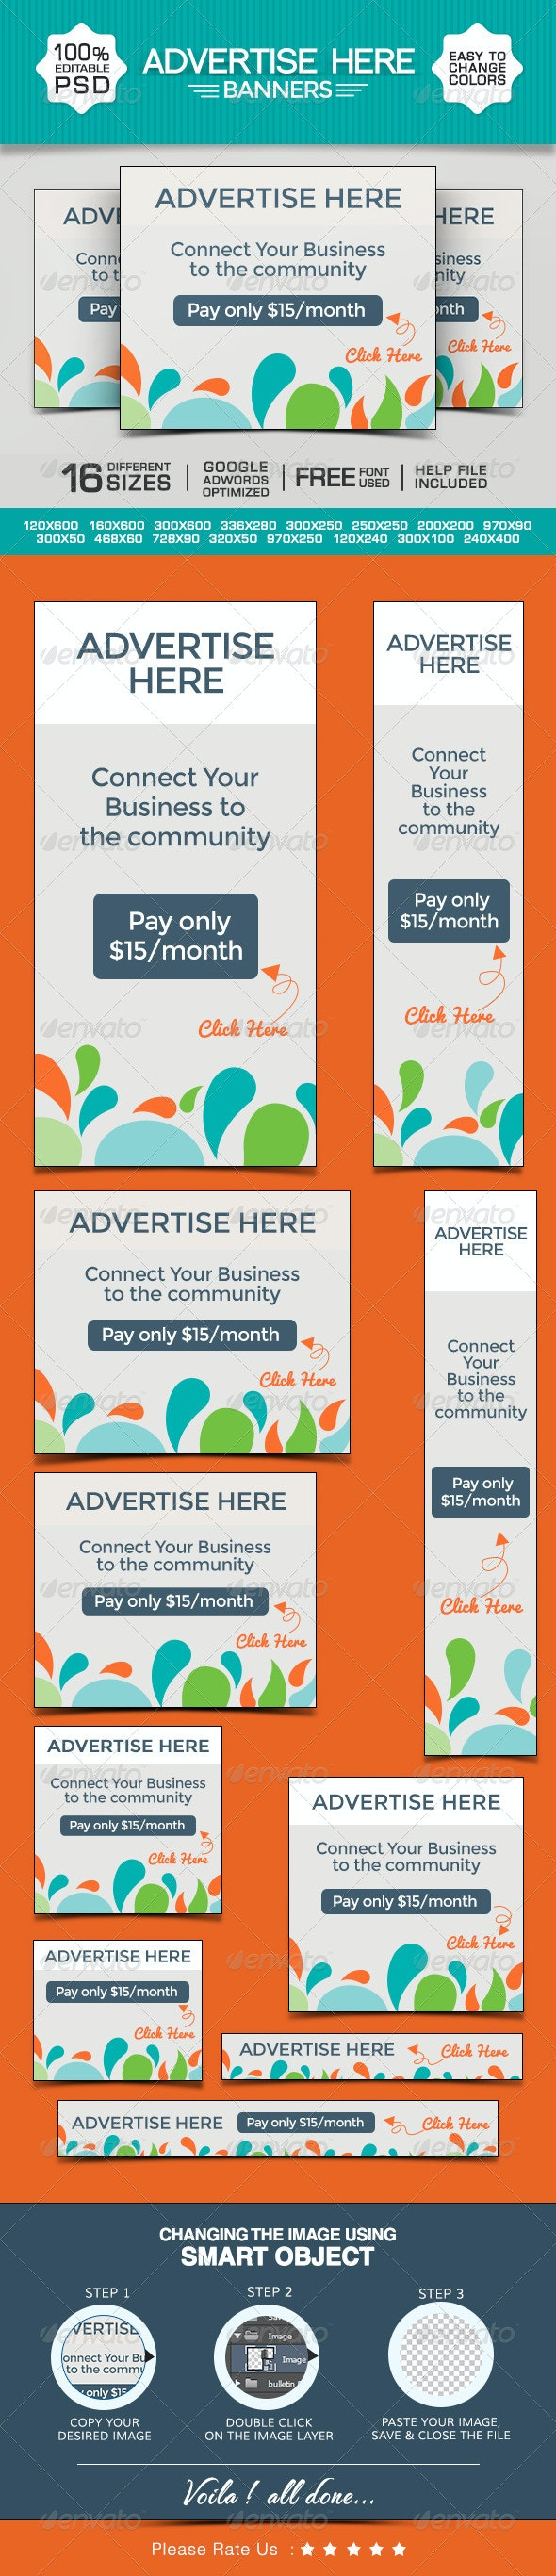 Advertise Here Banners - Banners & Ads Web Elements